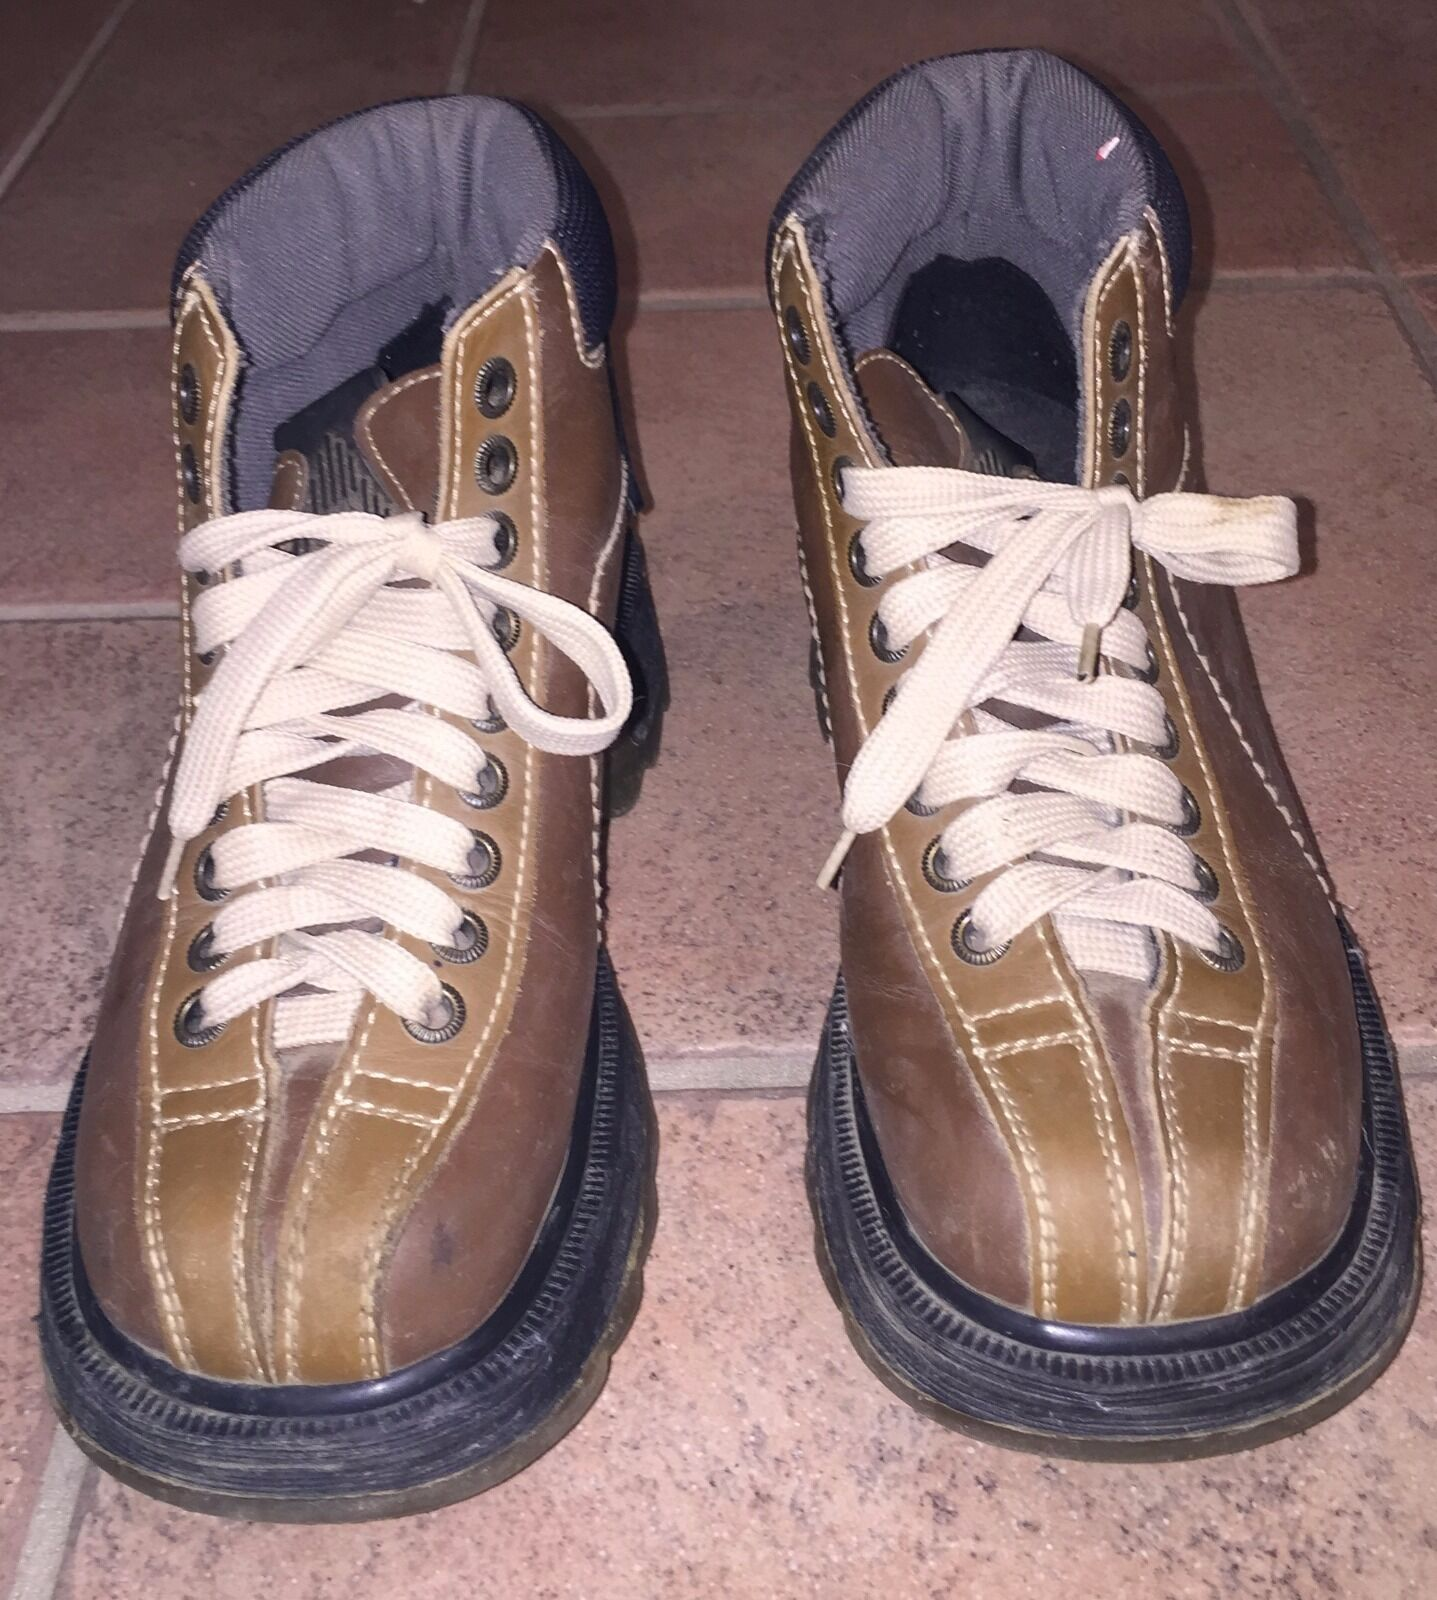 DR DOC MARTENS DM'S Brown Leather Boots 9793 Size 4 US